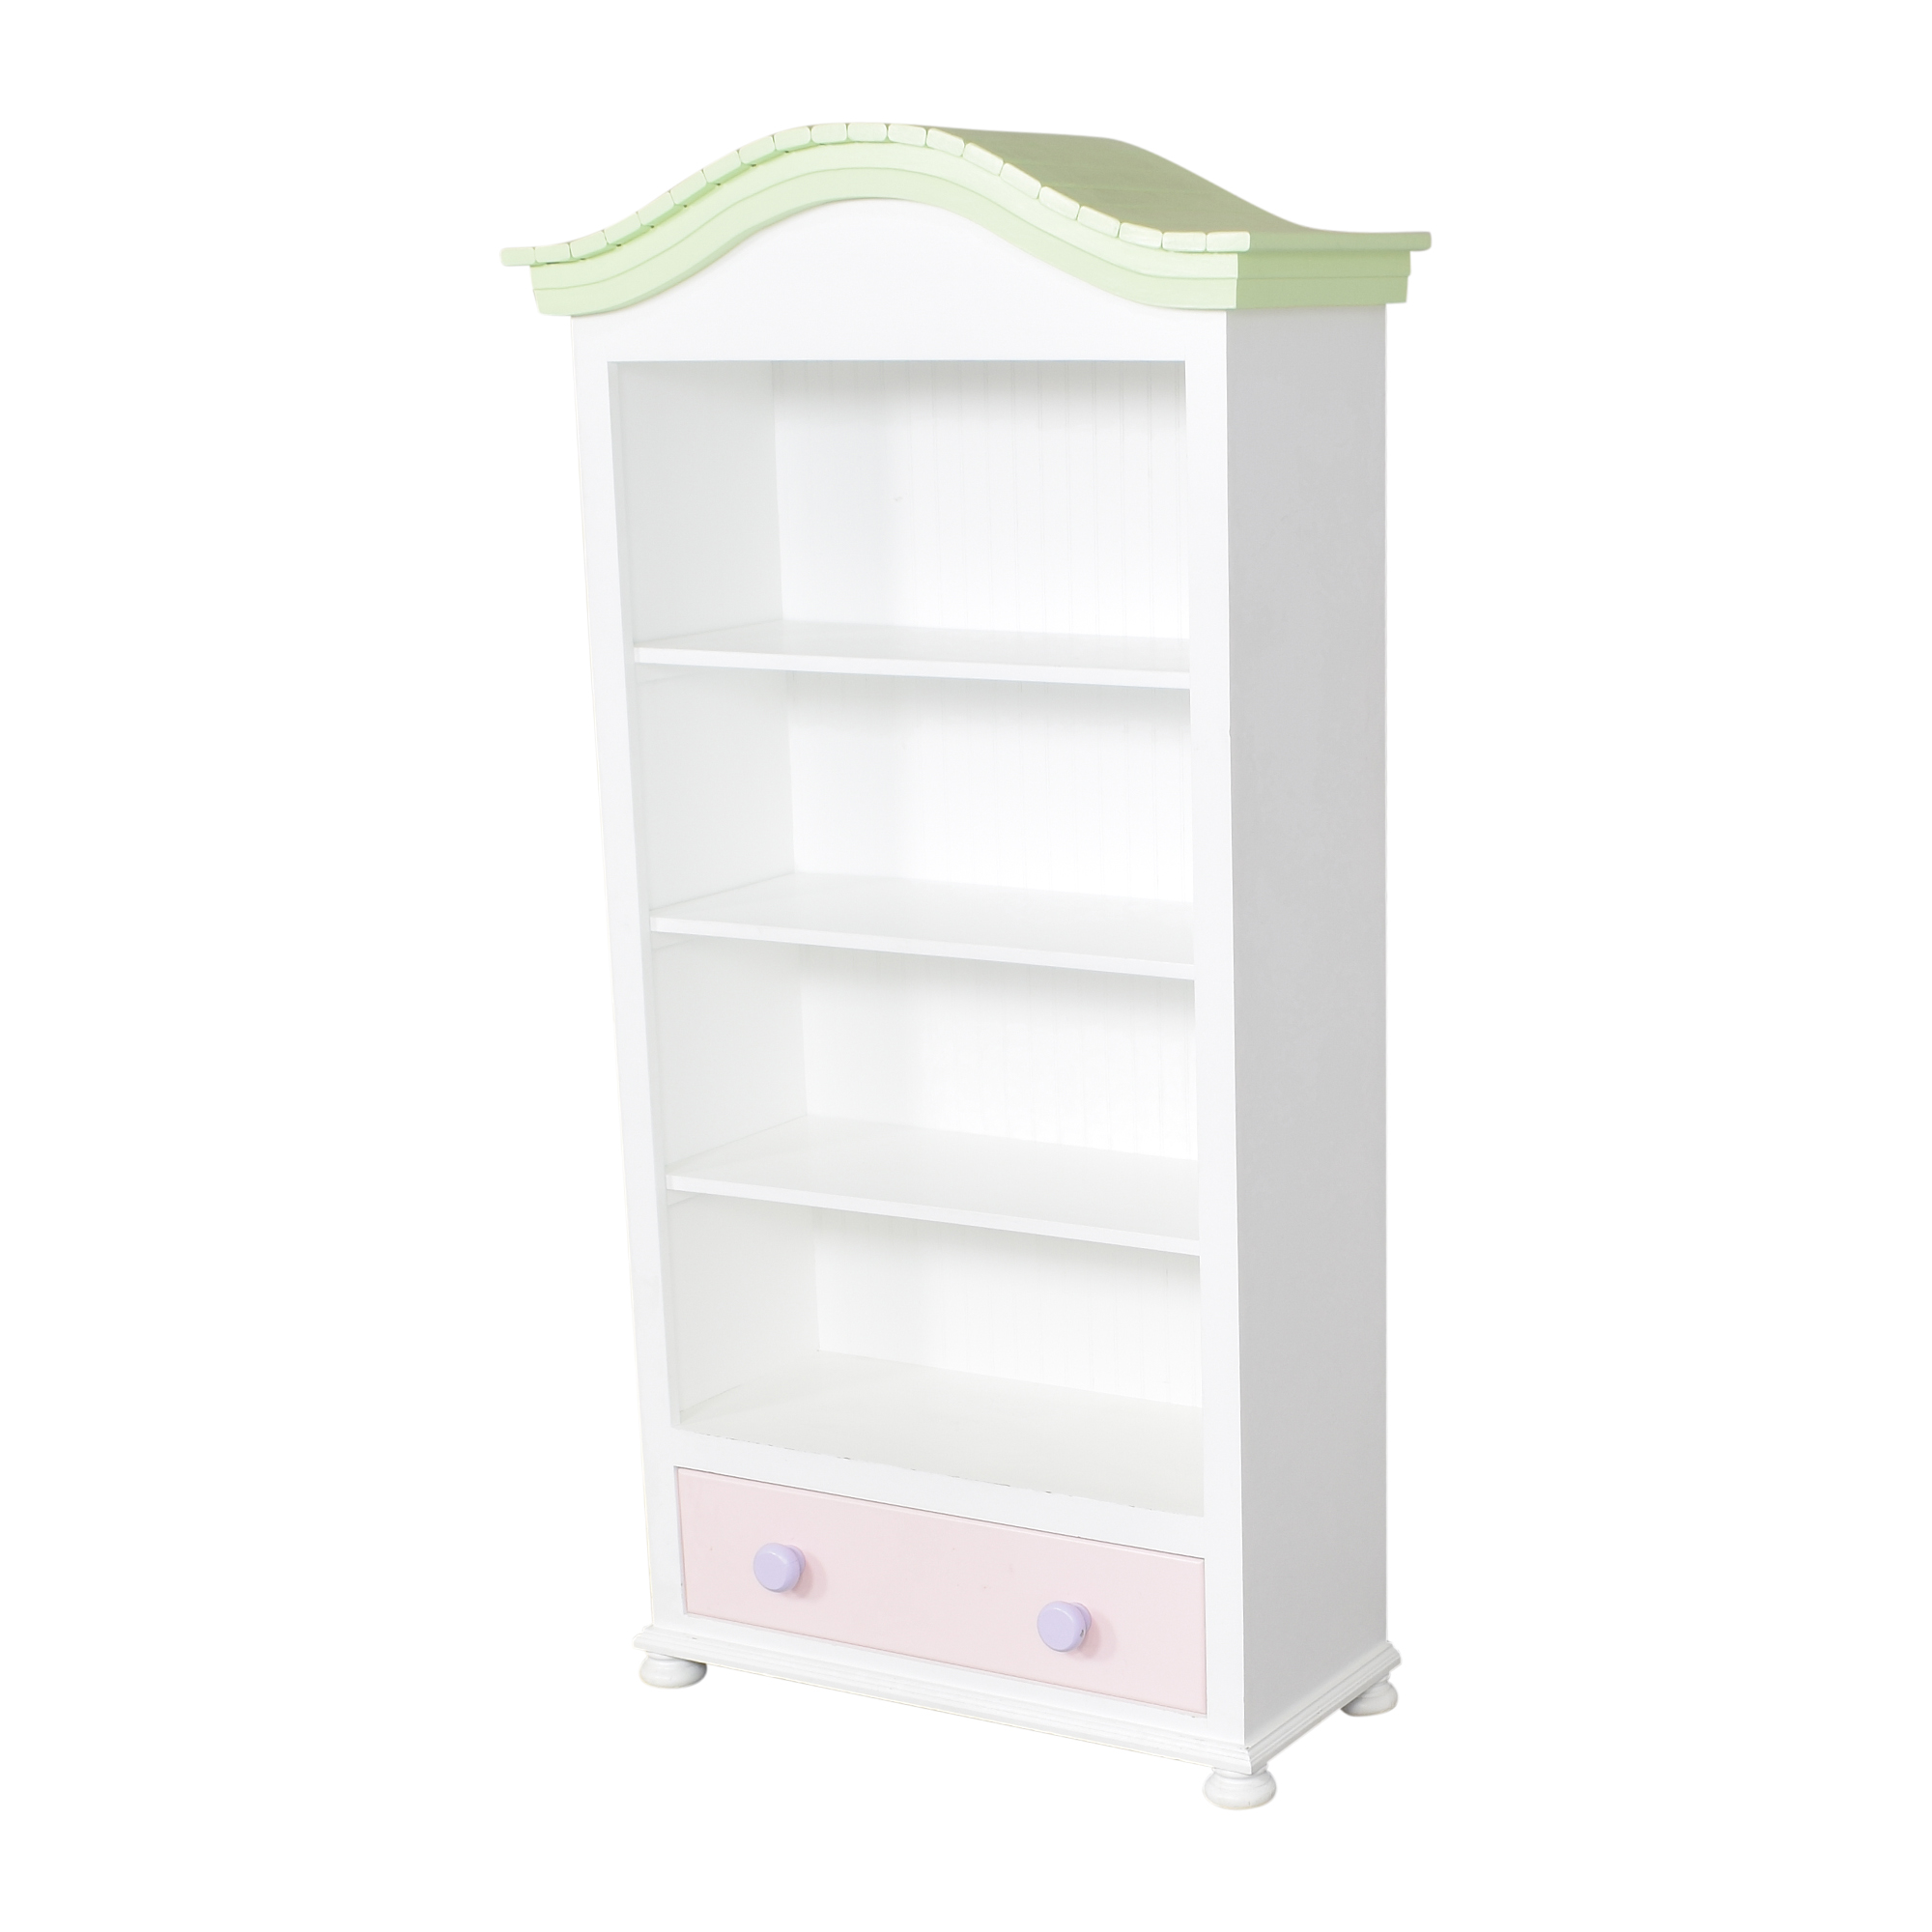 Tall Painted Bookcase / Bookcases & Shelving